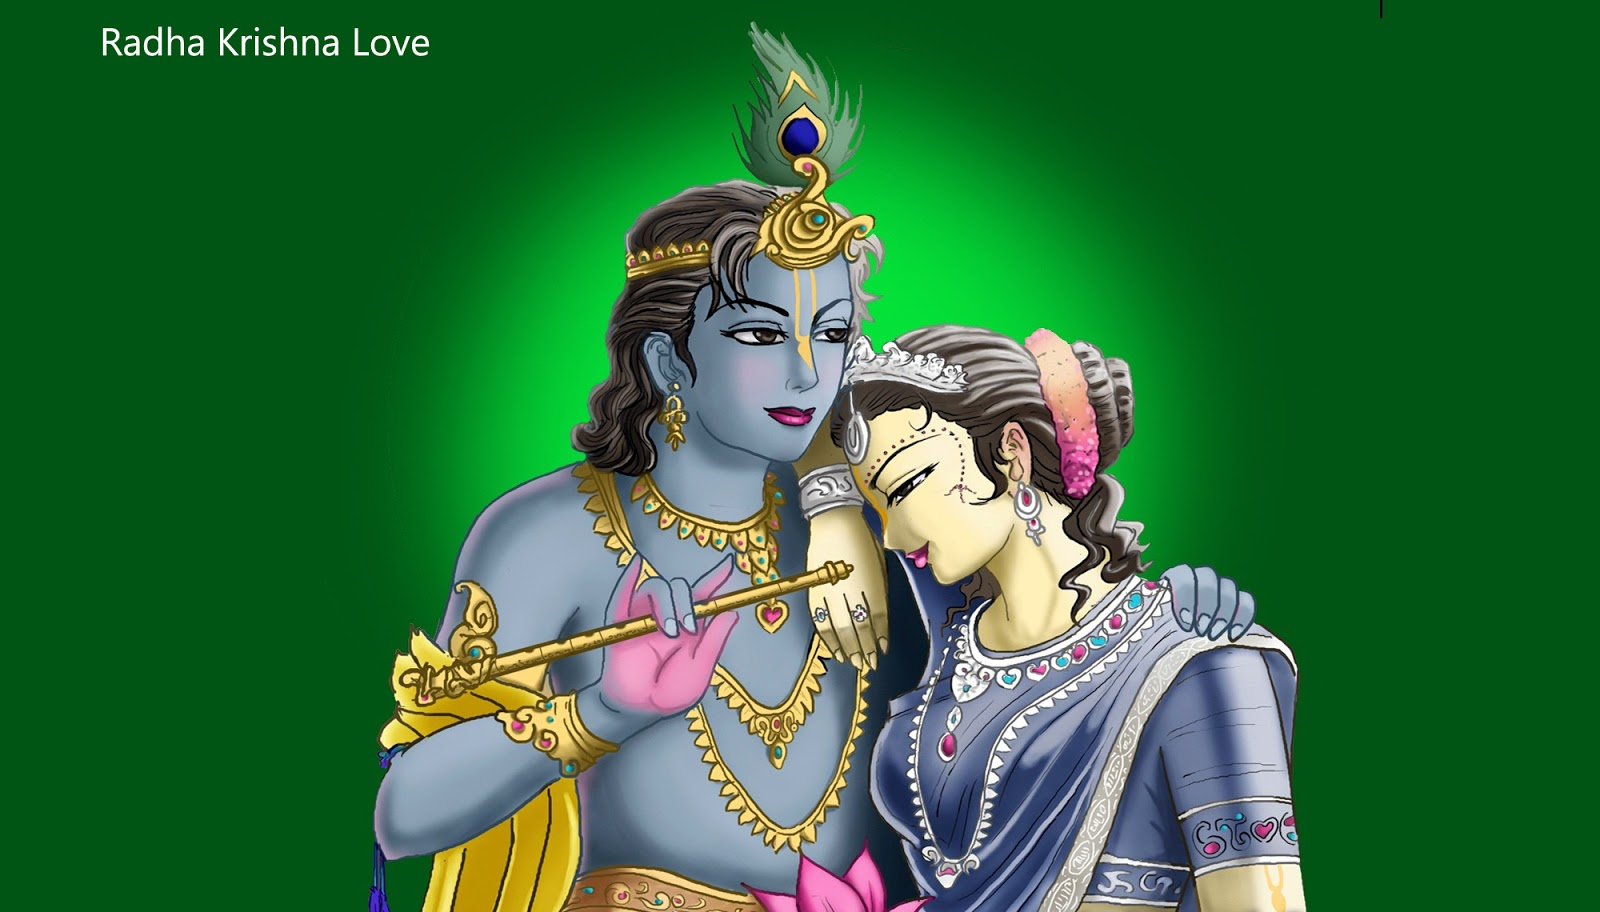 Radha Krishna Love Quotes Wallpaper In Hindi Labzada Wallpaper